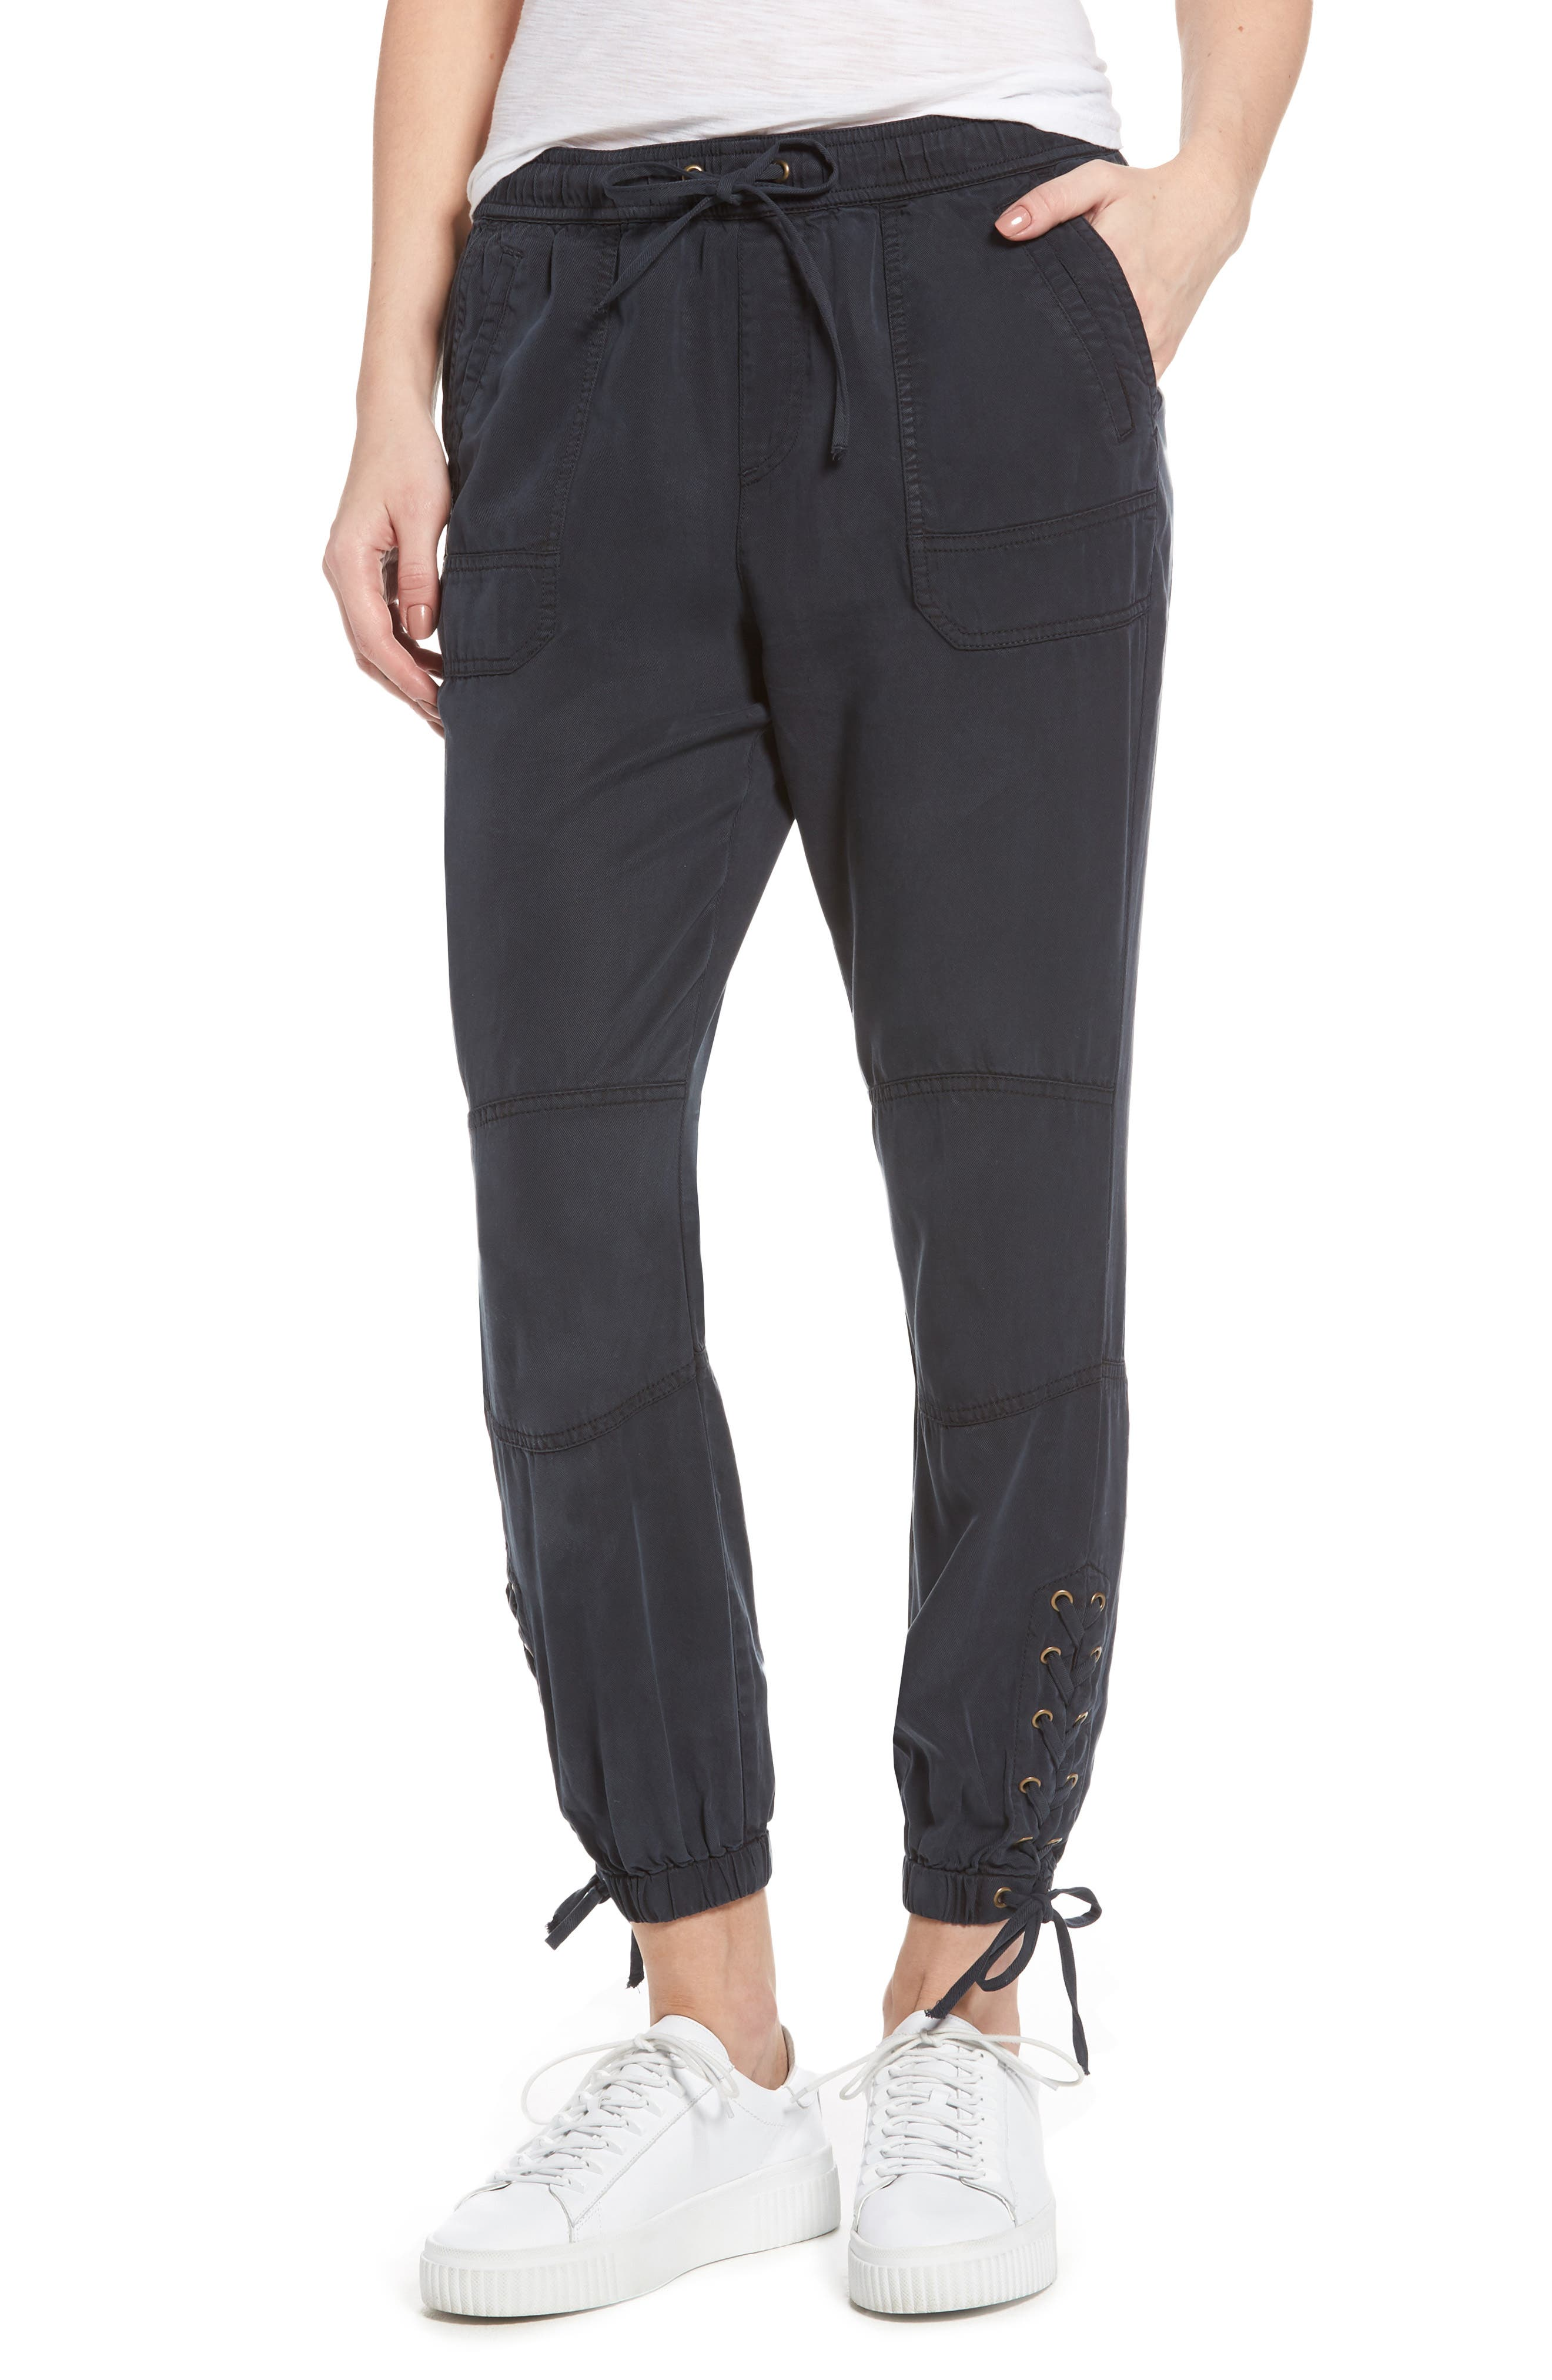 Pam & Gela Lace-Up Jogger Pants